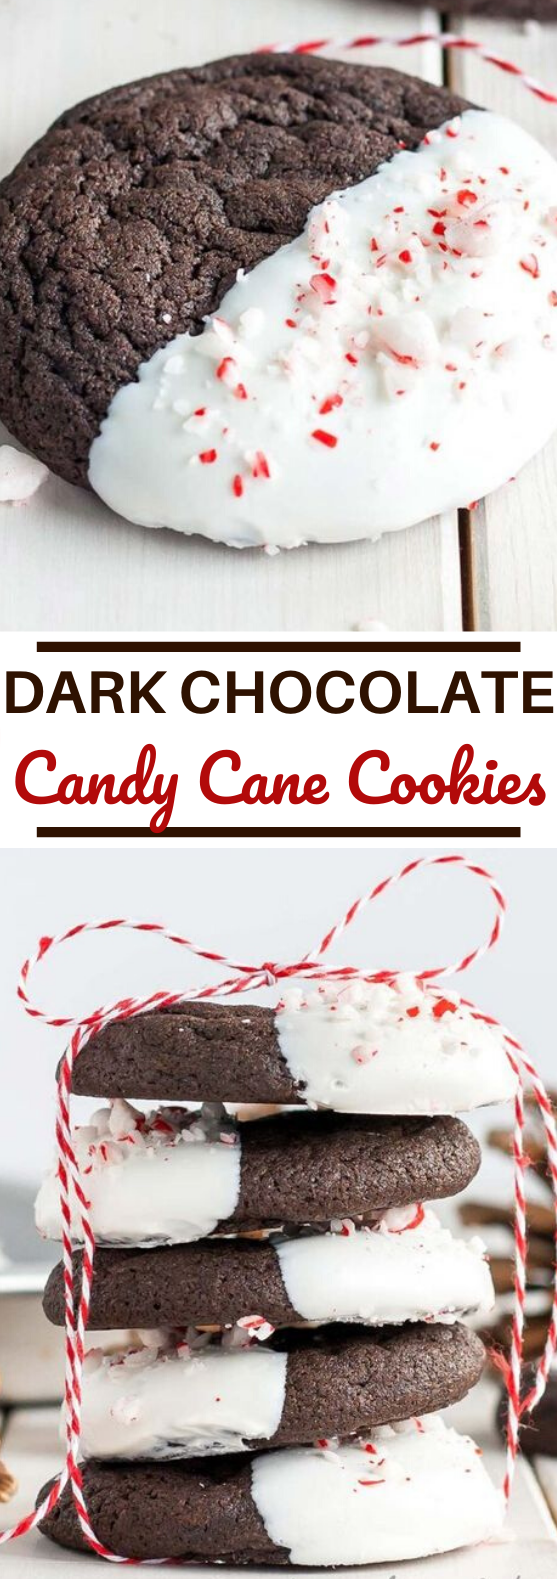 Dark Chocolate Candy Cane Cookies #cookies #desserts #holiday #christmas #baking